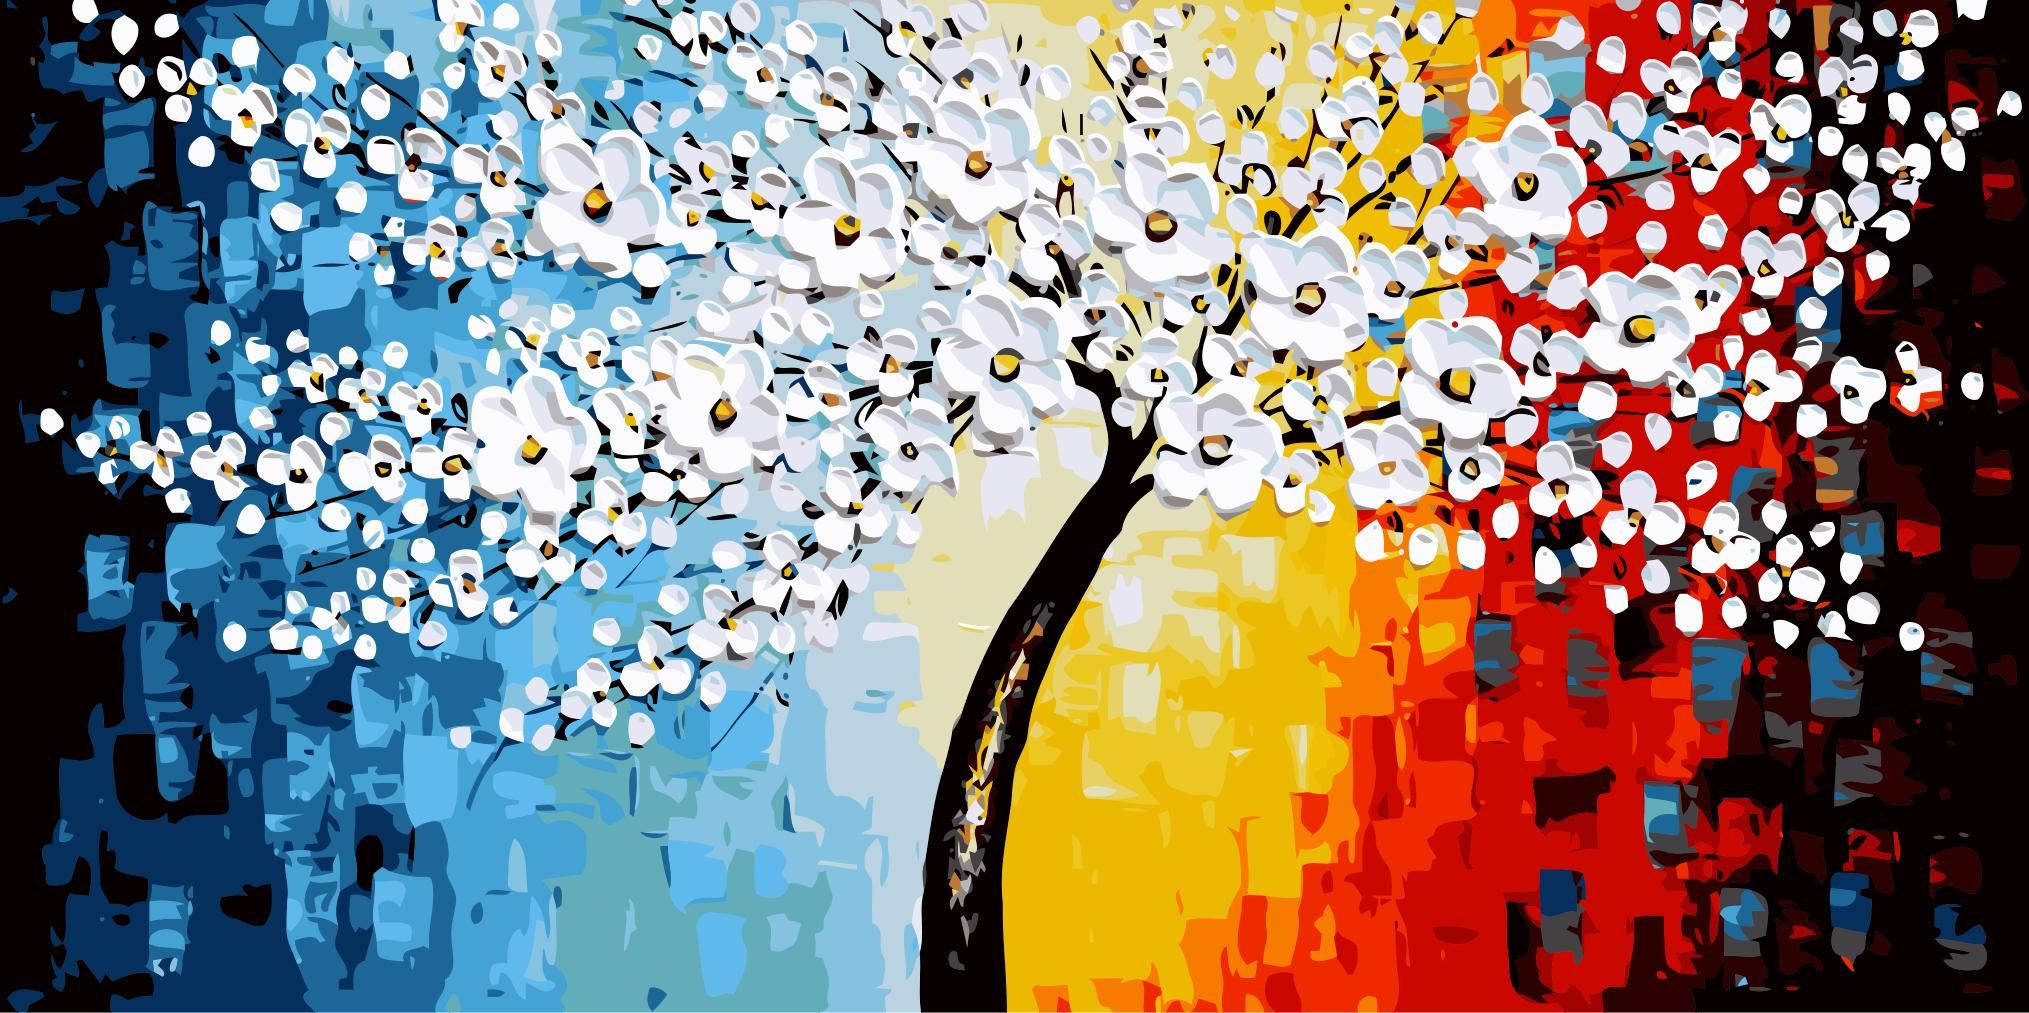 Paint By Numbers Kit 50 100cm Diy Painting Tree Abstract Painting Picture On Canvas Paint Coloring By Number Diy Painting Gift By 1supply On Etsy Fai Da Te